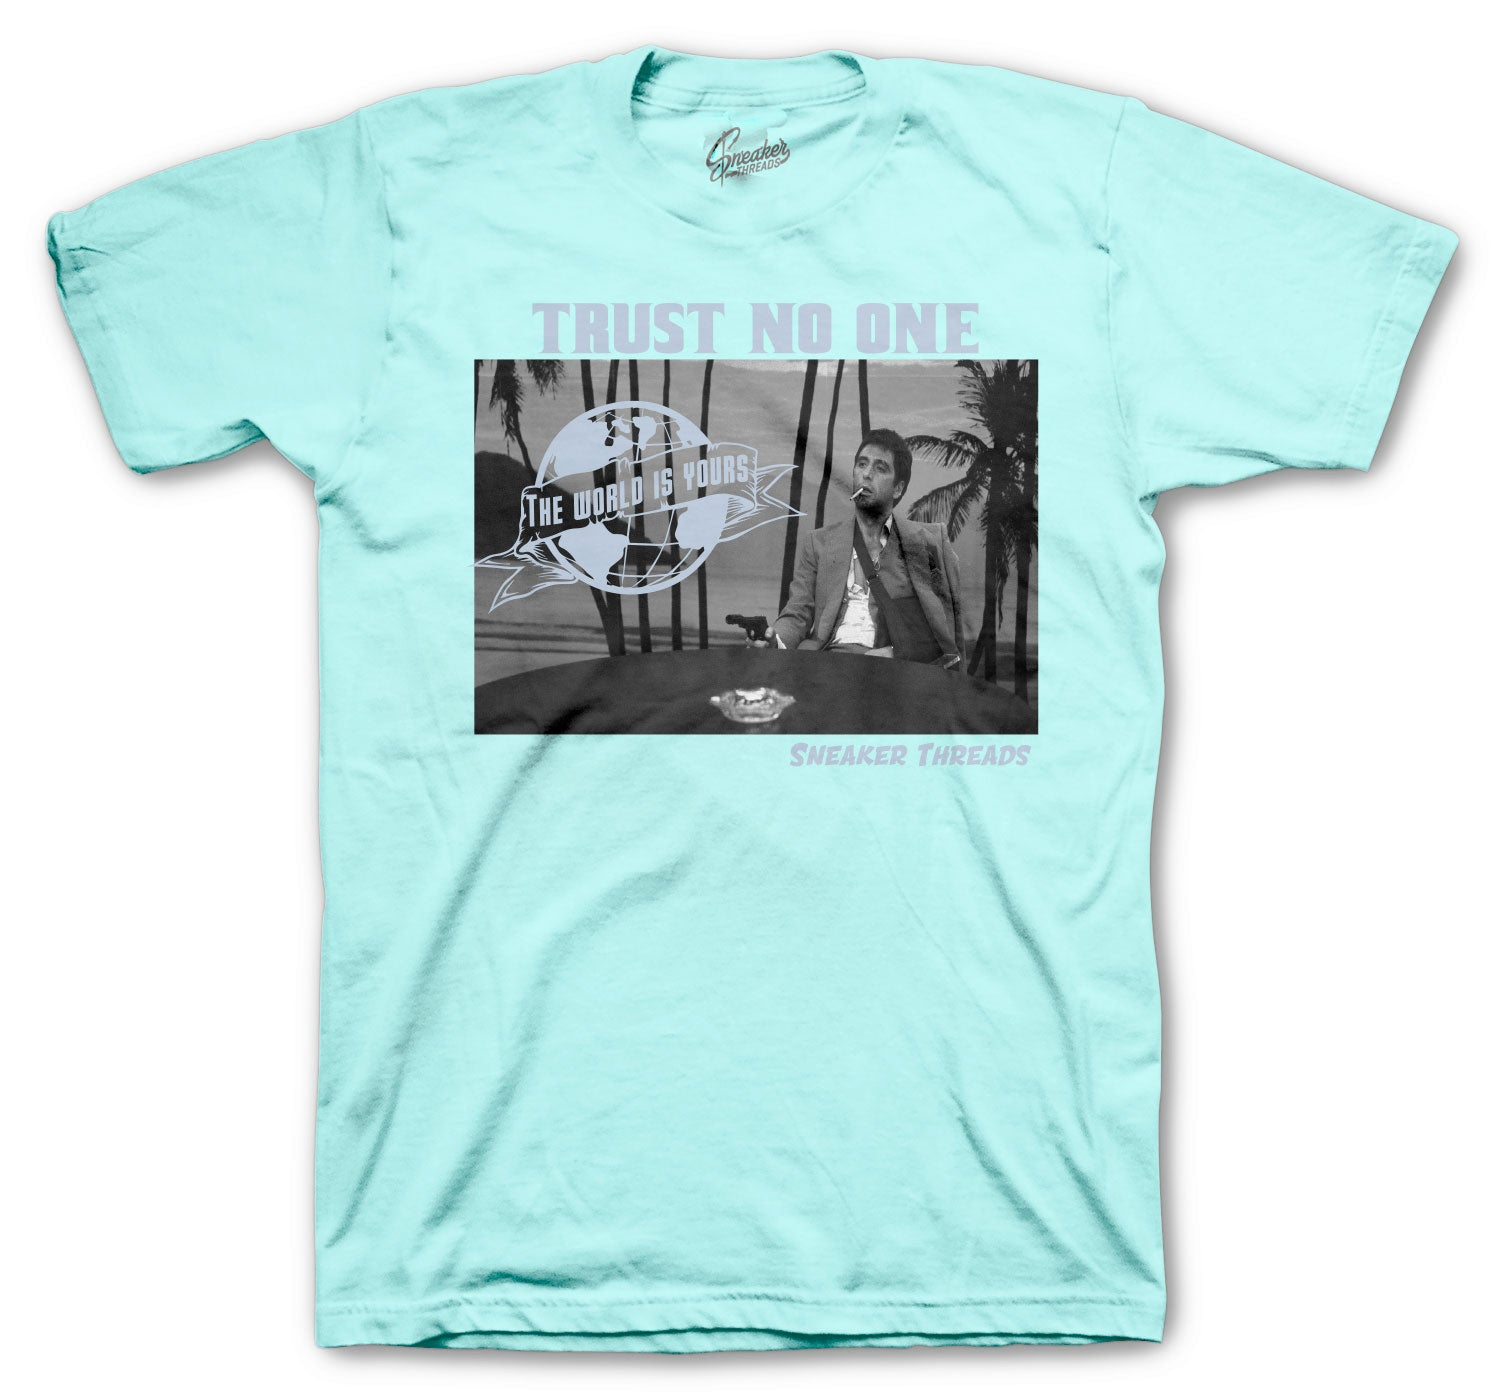 Jordan 12 Easter Shirt - Tony Knows - Green